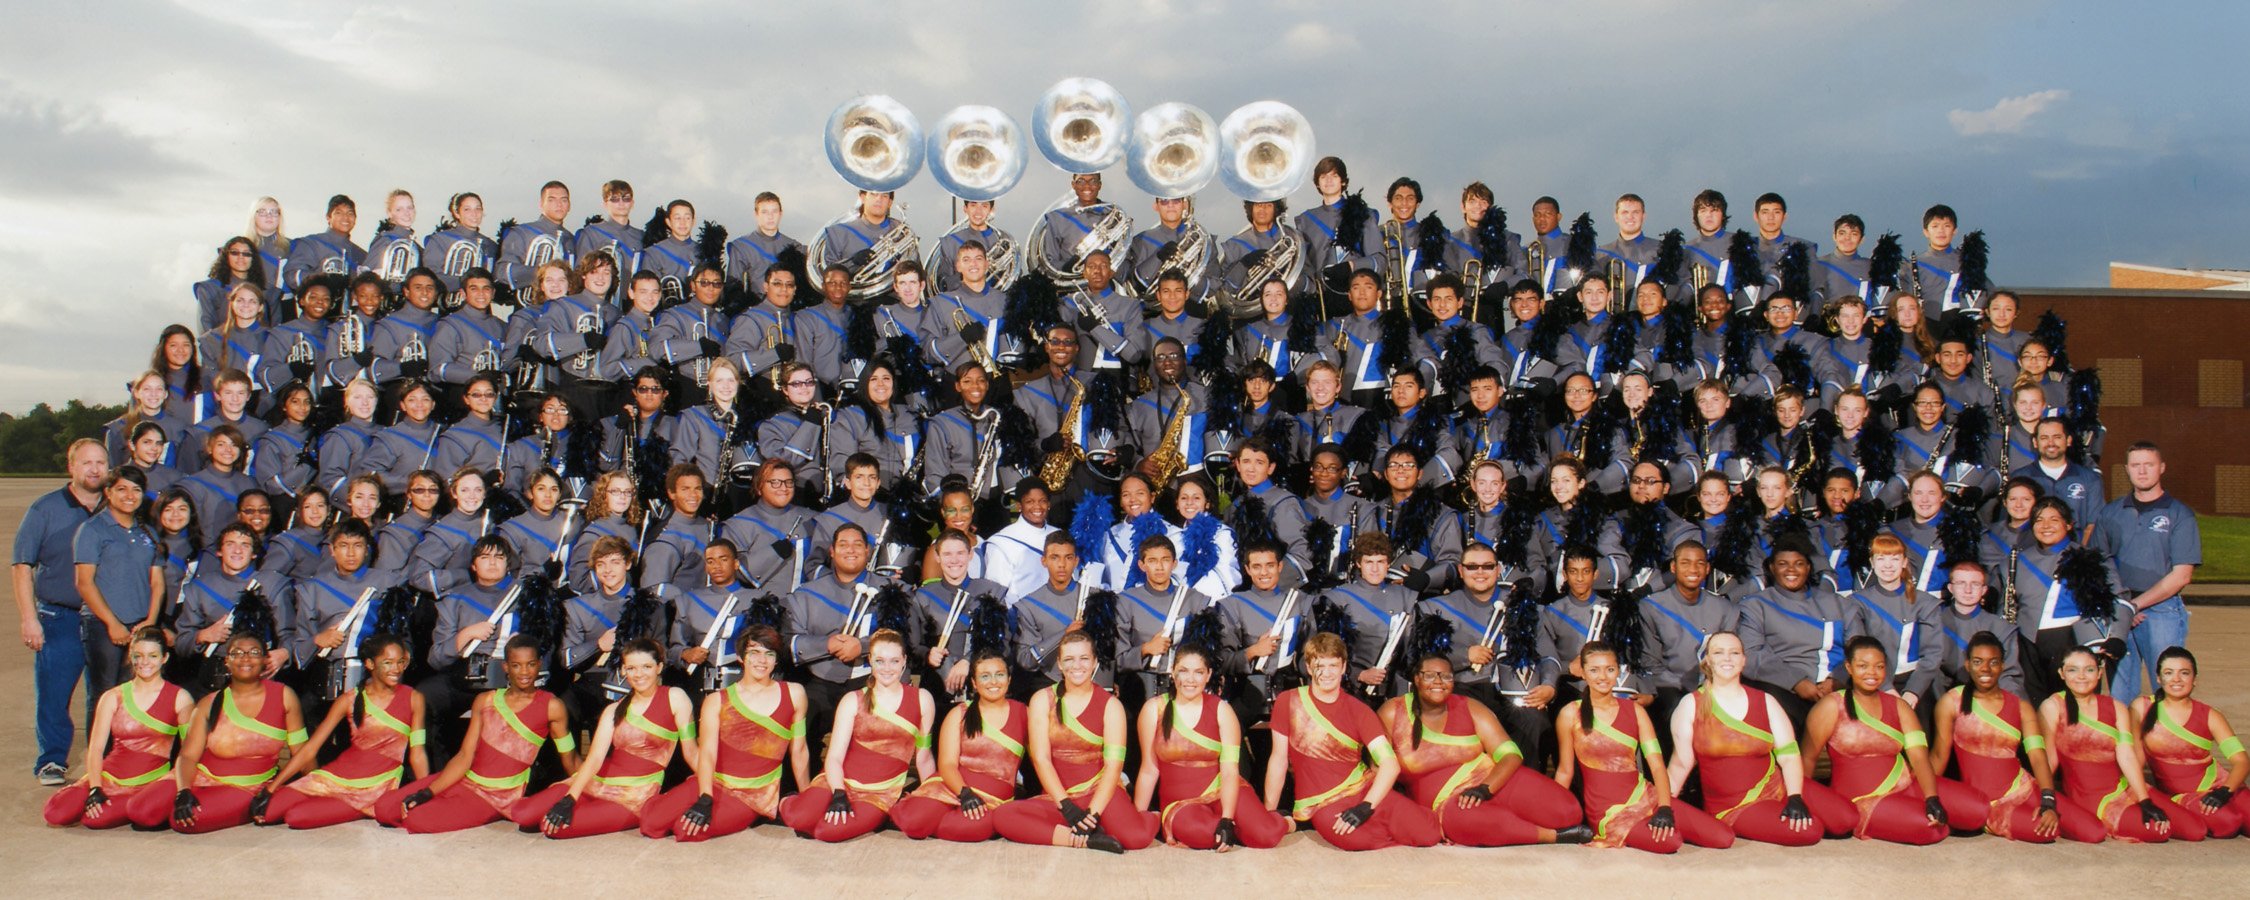 School Band will perform at the Alamo Bowl, Dec. 30, in San Antonio